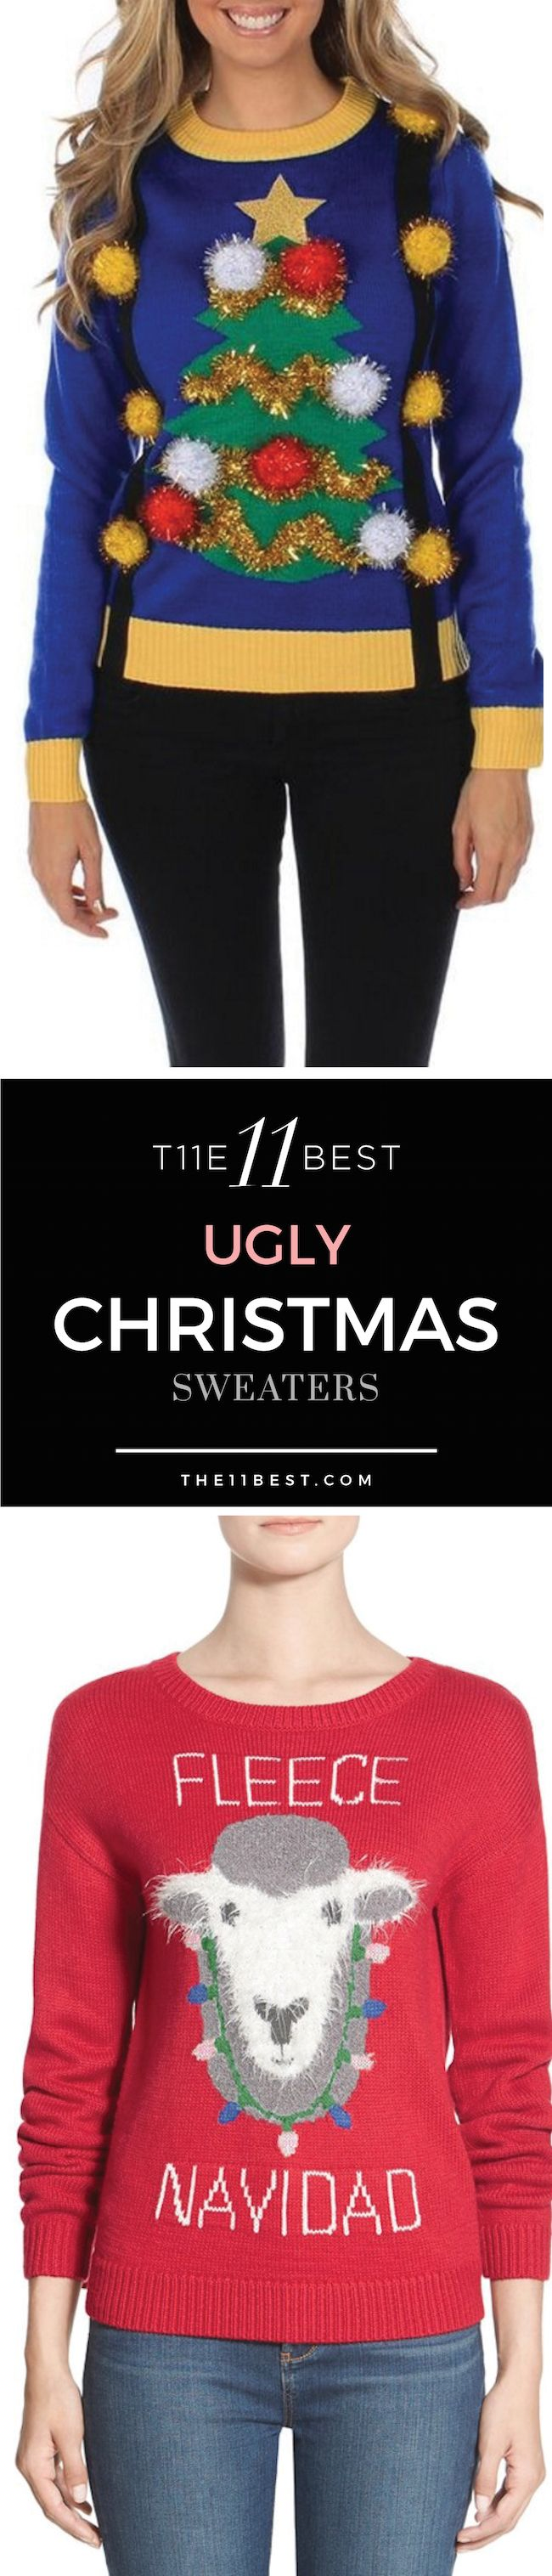 The 11 Best Ugly Christmas Sweaters